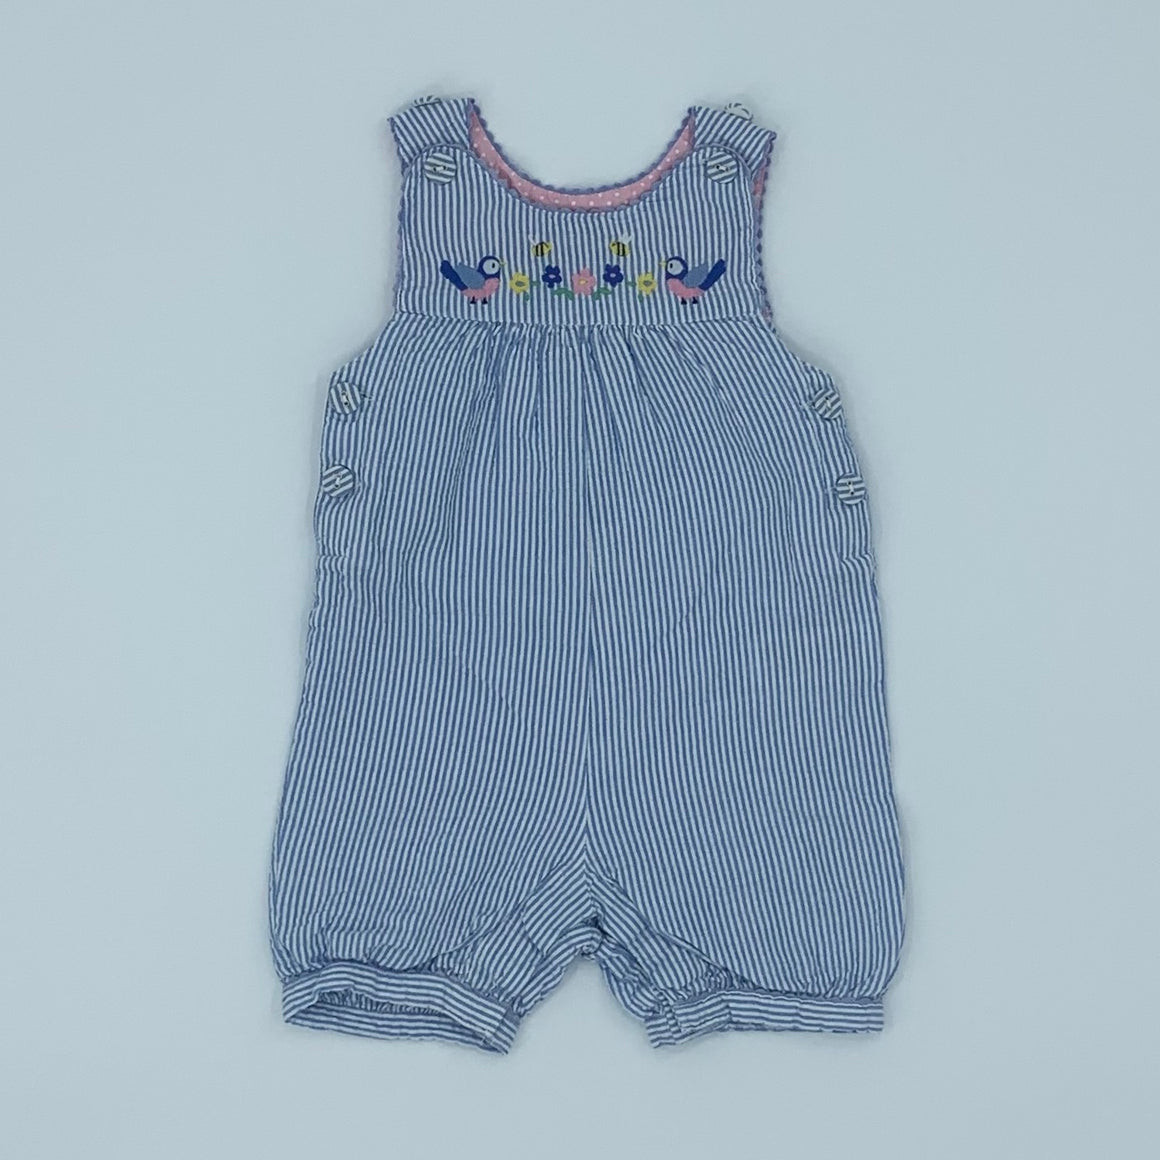 Hardly Worn Jojo Maman Bebe blue check romper dungarees size 6-12 months